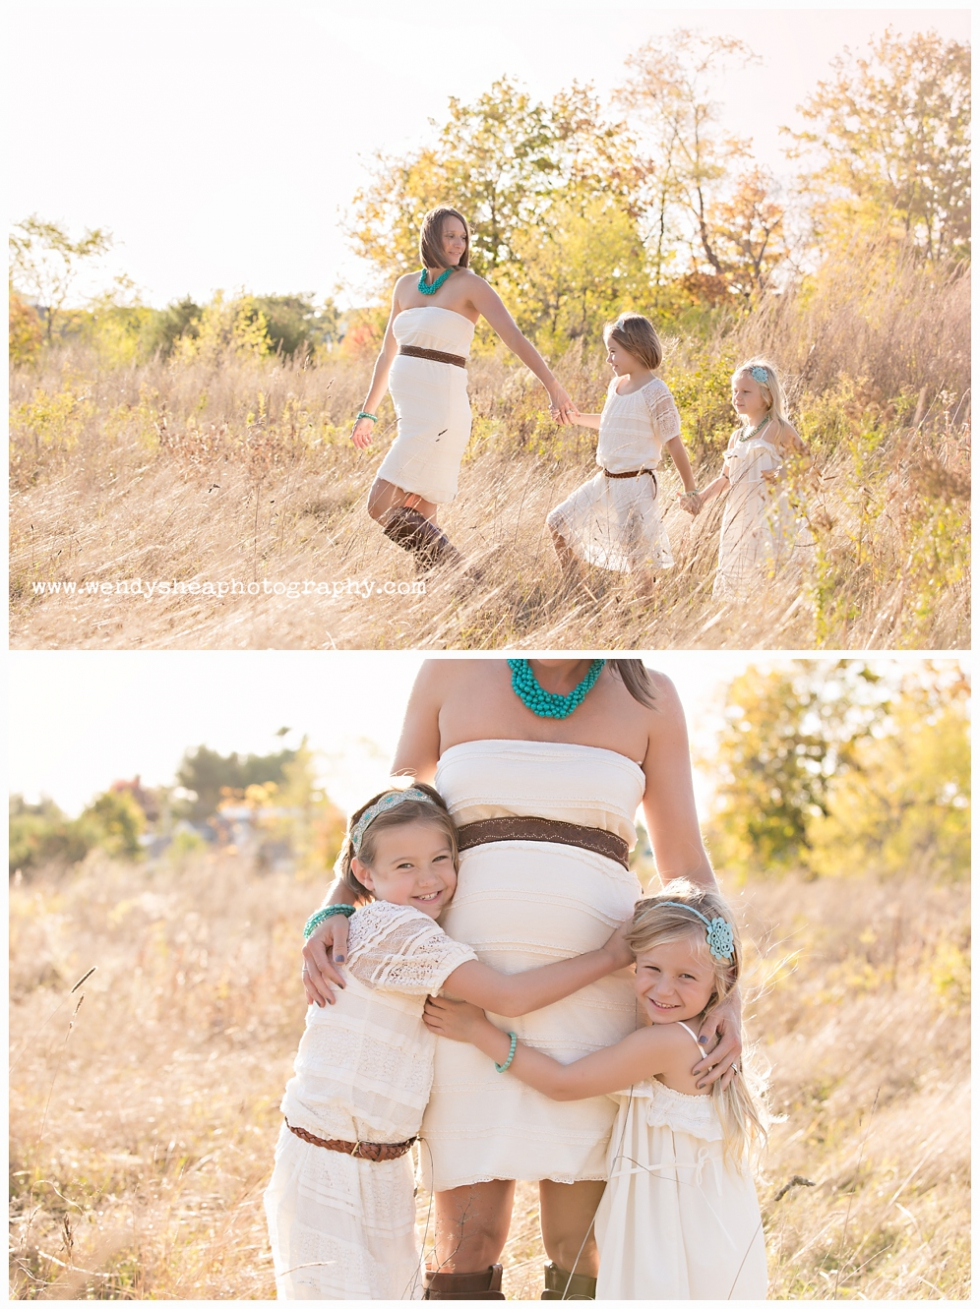 WendySheaPhotography_Massachusetts_Maternity_Photographer_0019